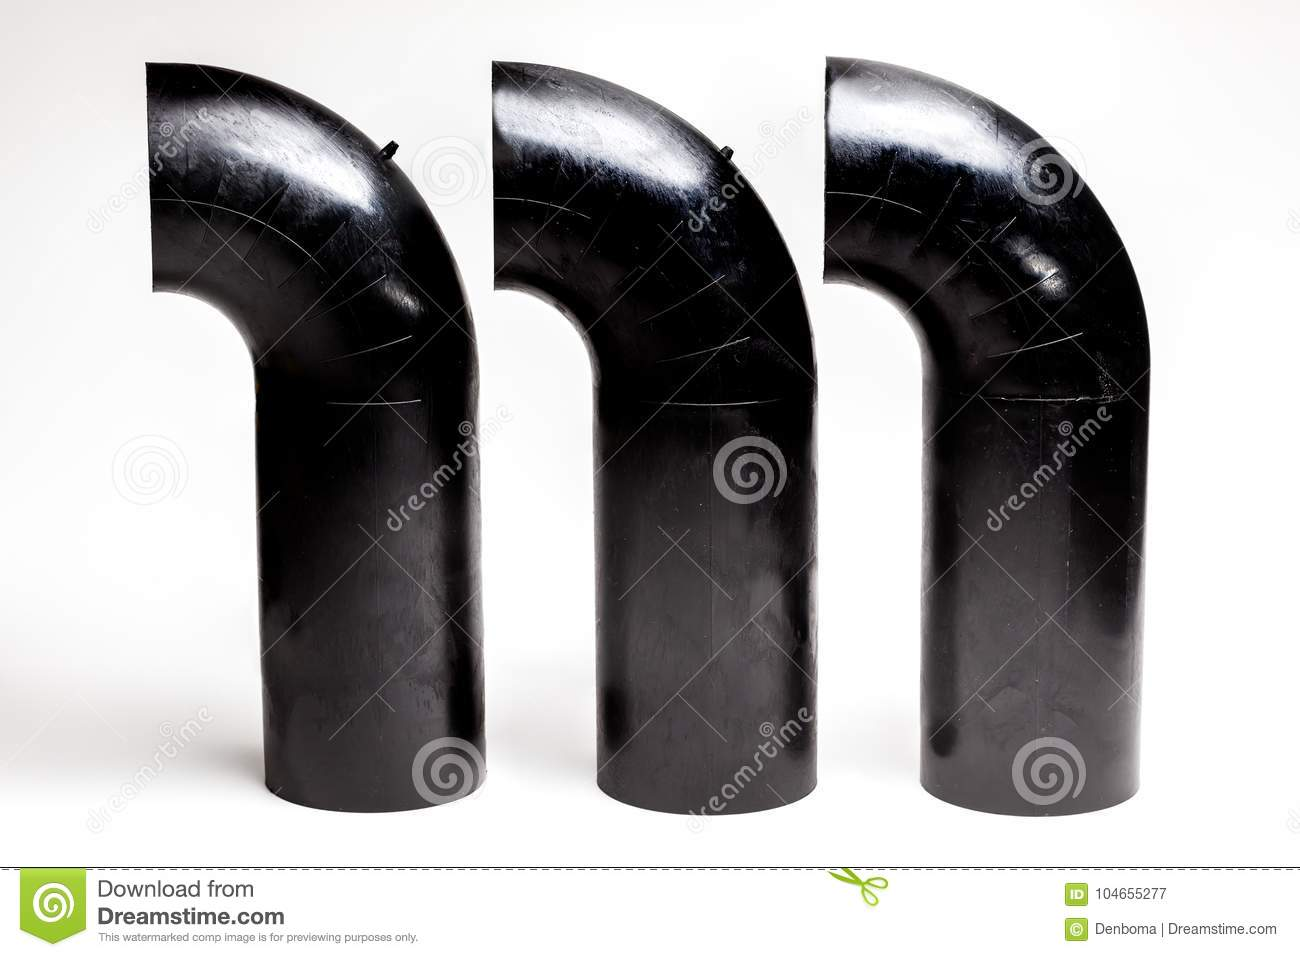 Tube connection toilet stock image  Image of industrial